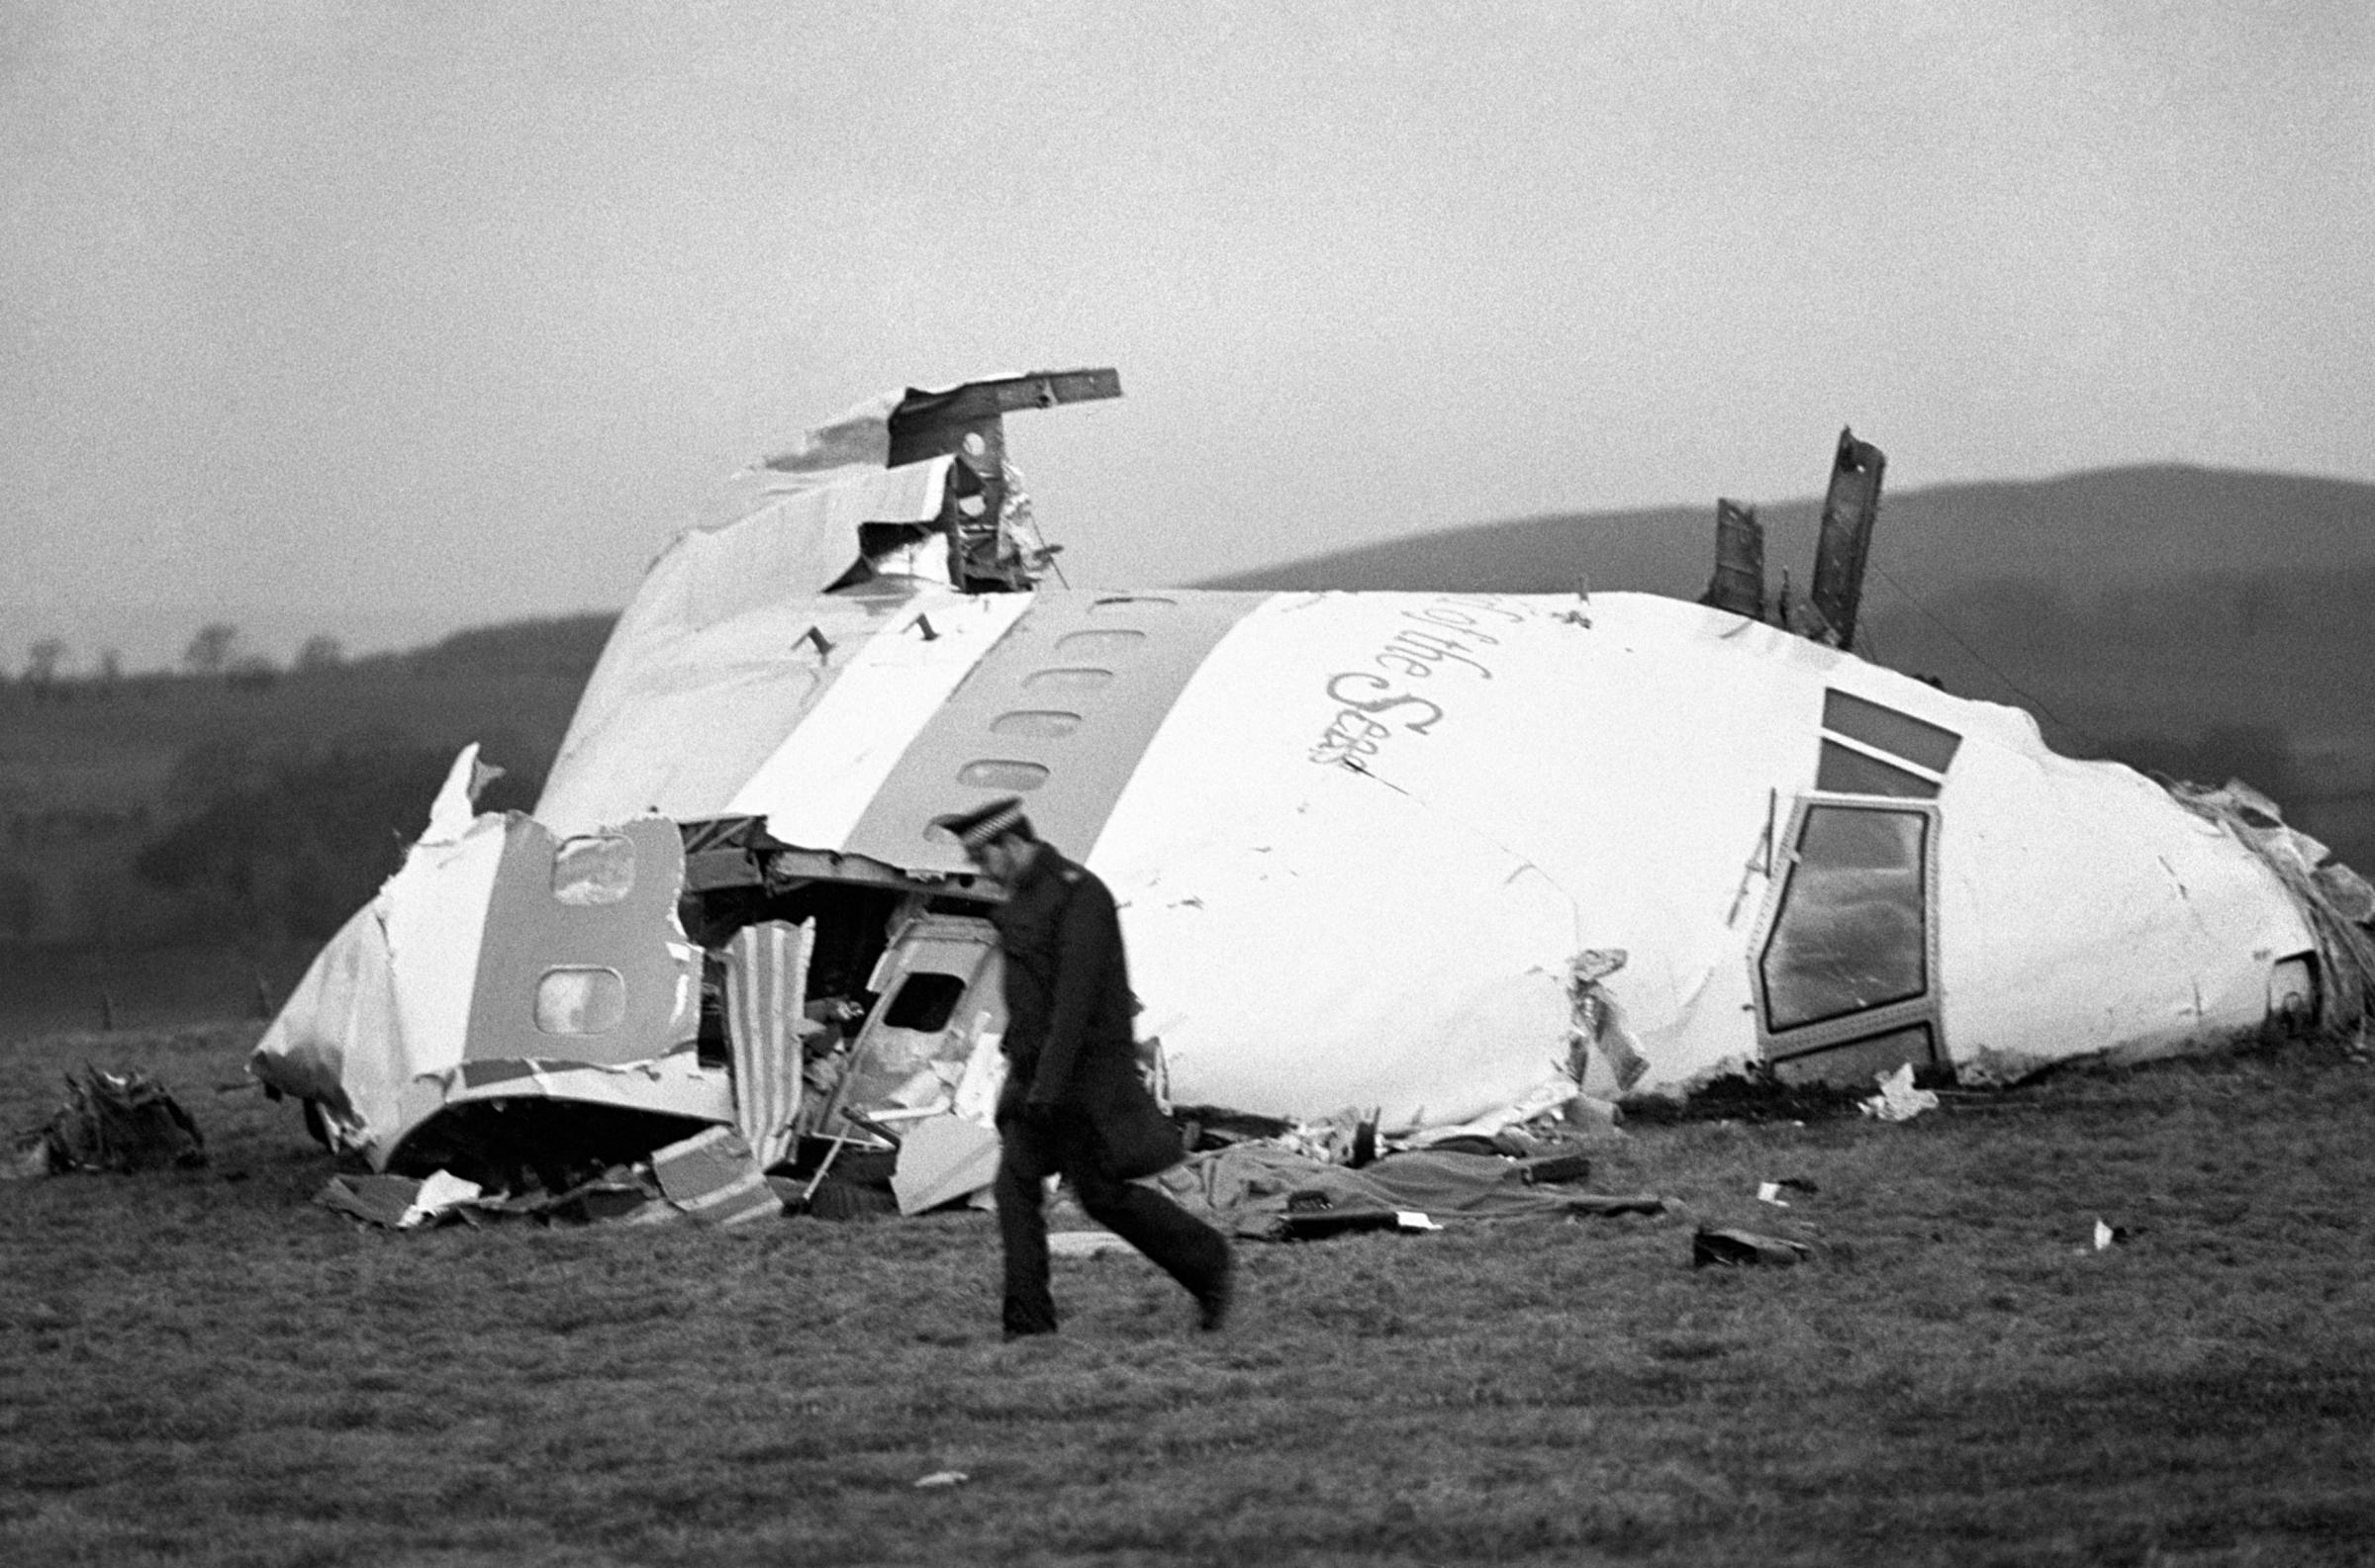 Lockerbie bombing victims remembered on 30th anniversary